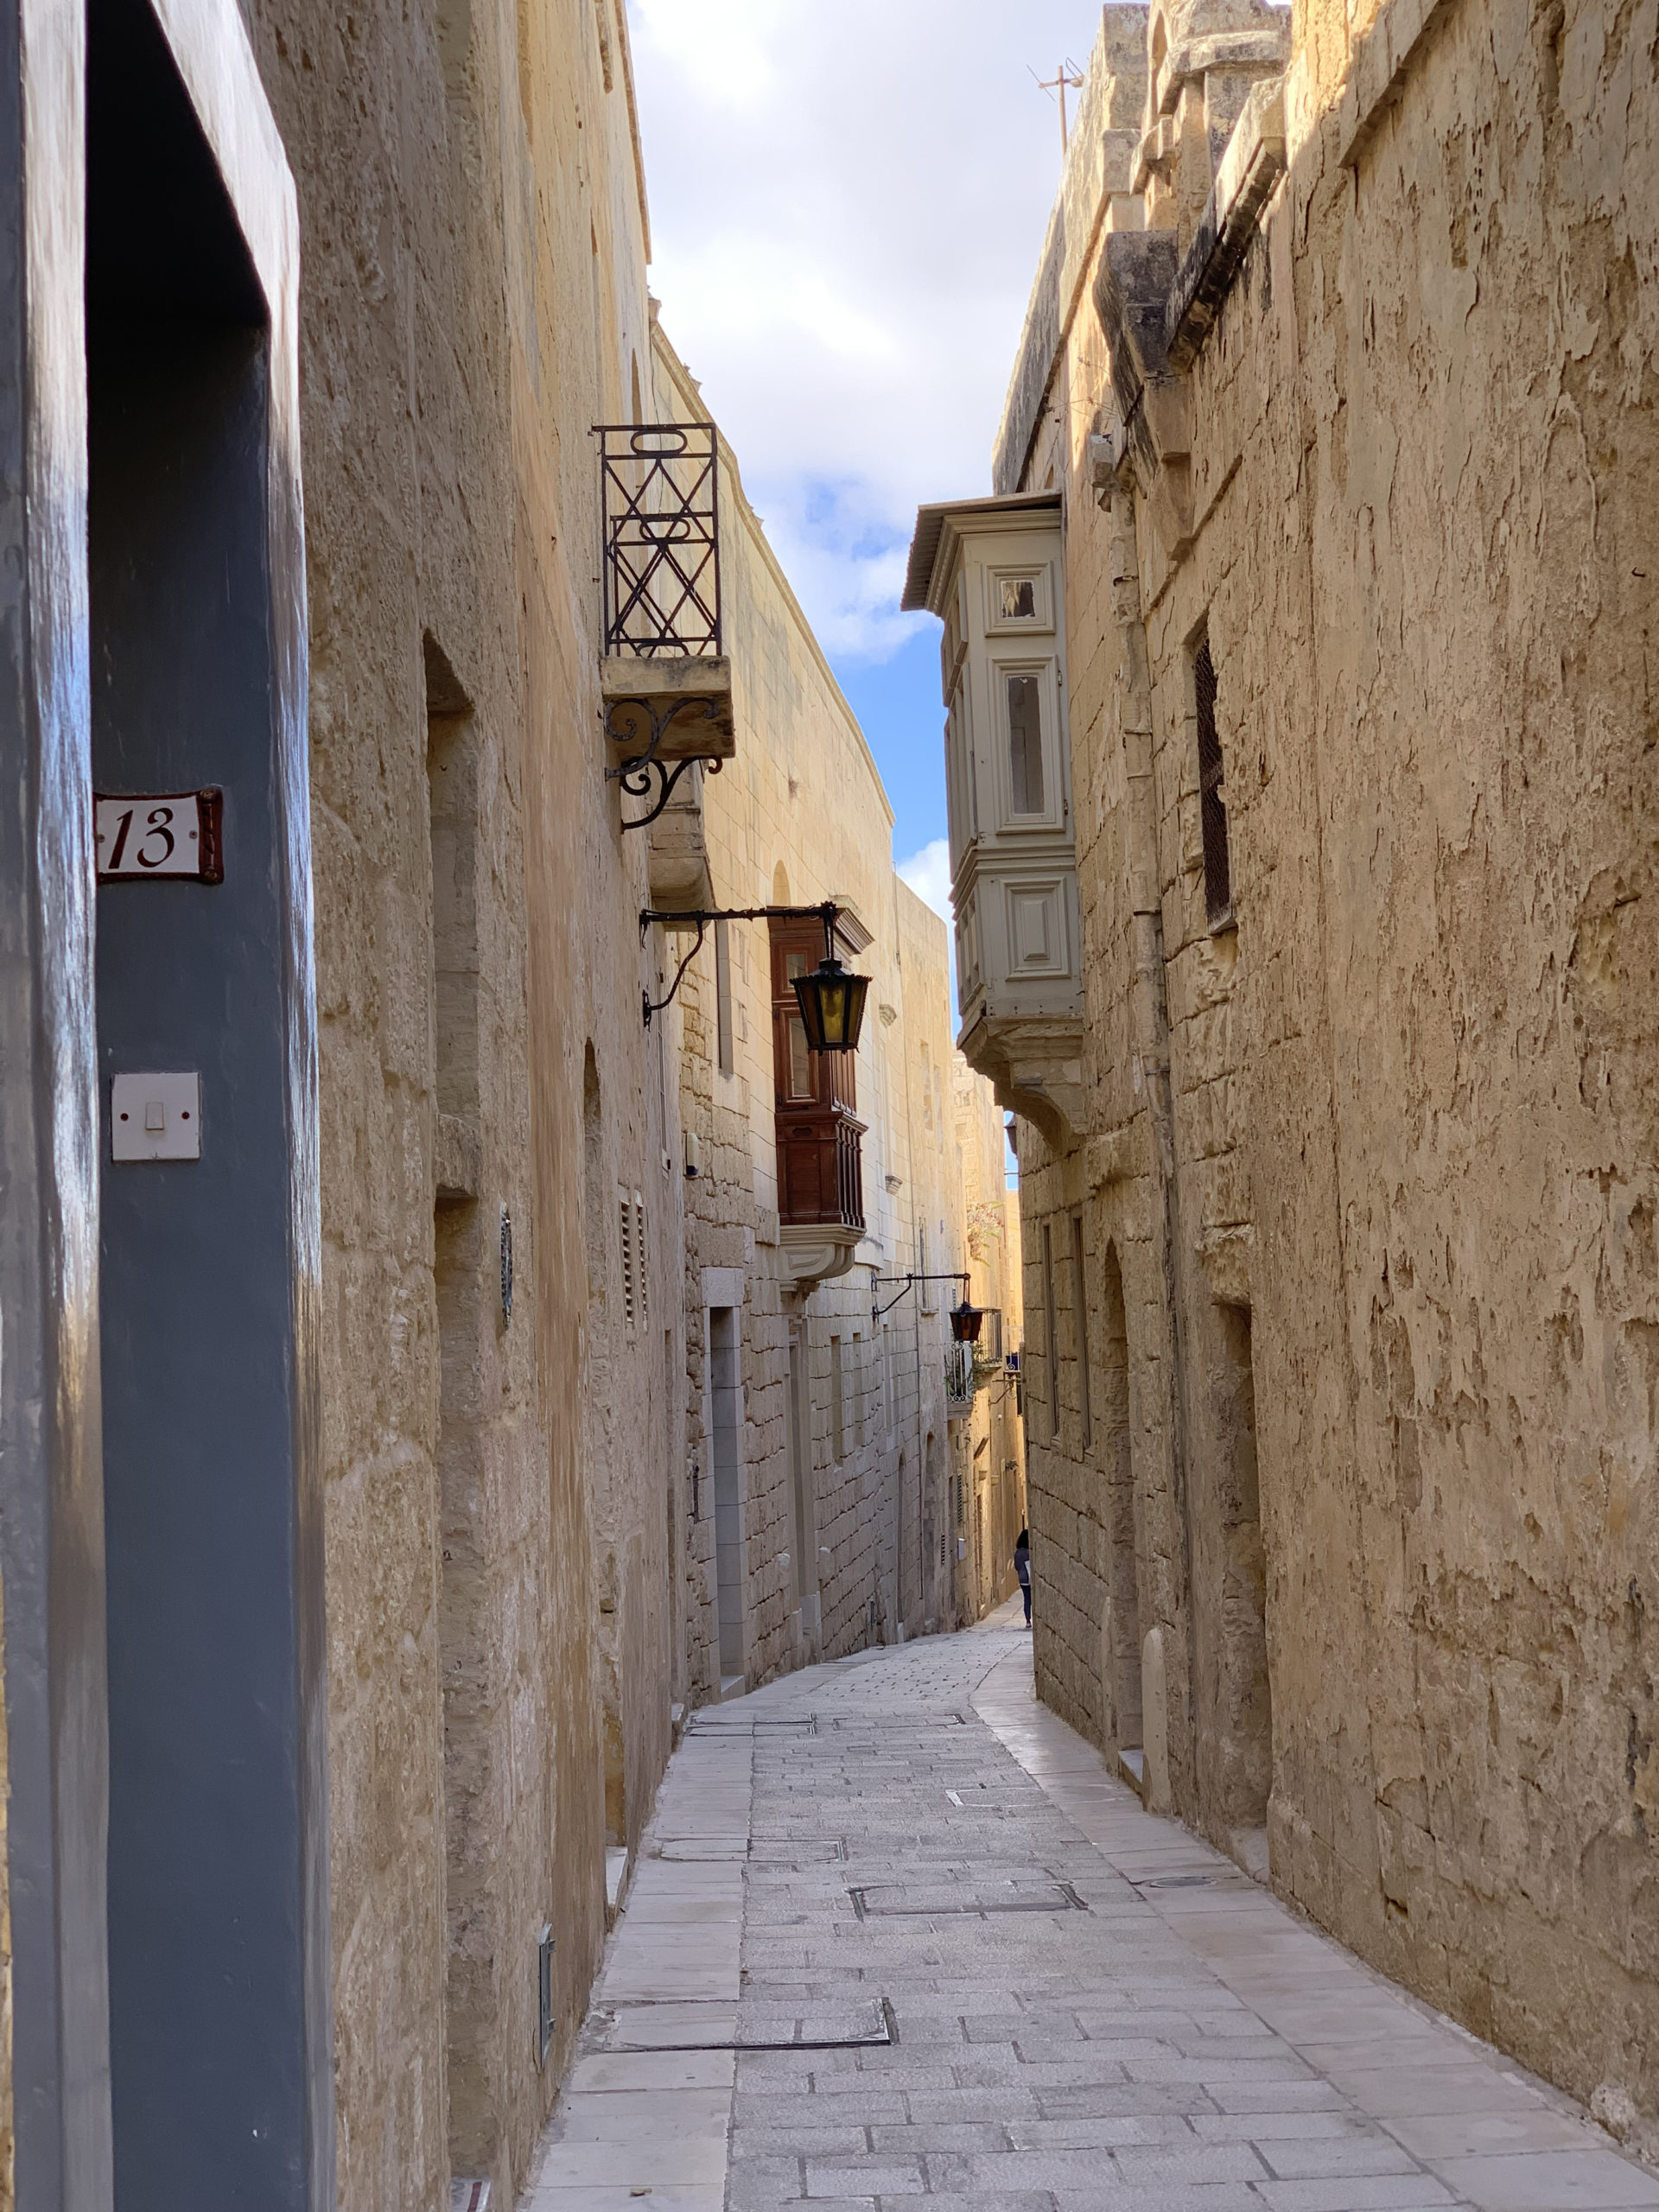 lifestyle redesign  - IMG 2980.HEIC scaled - Travel Tuesday: Valletta Vibes